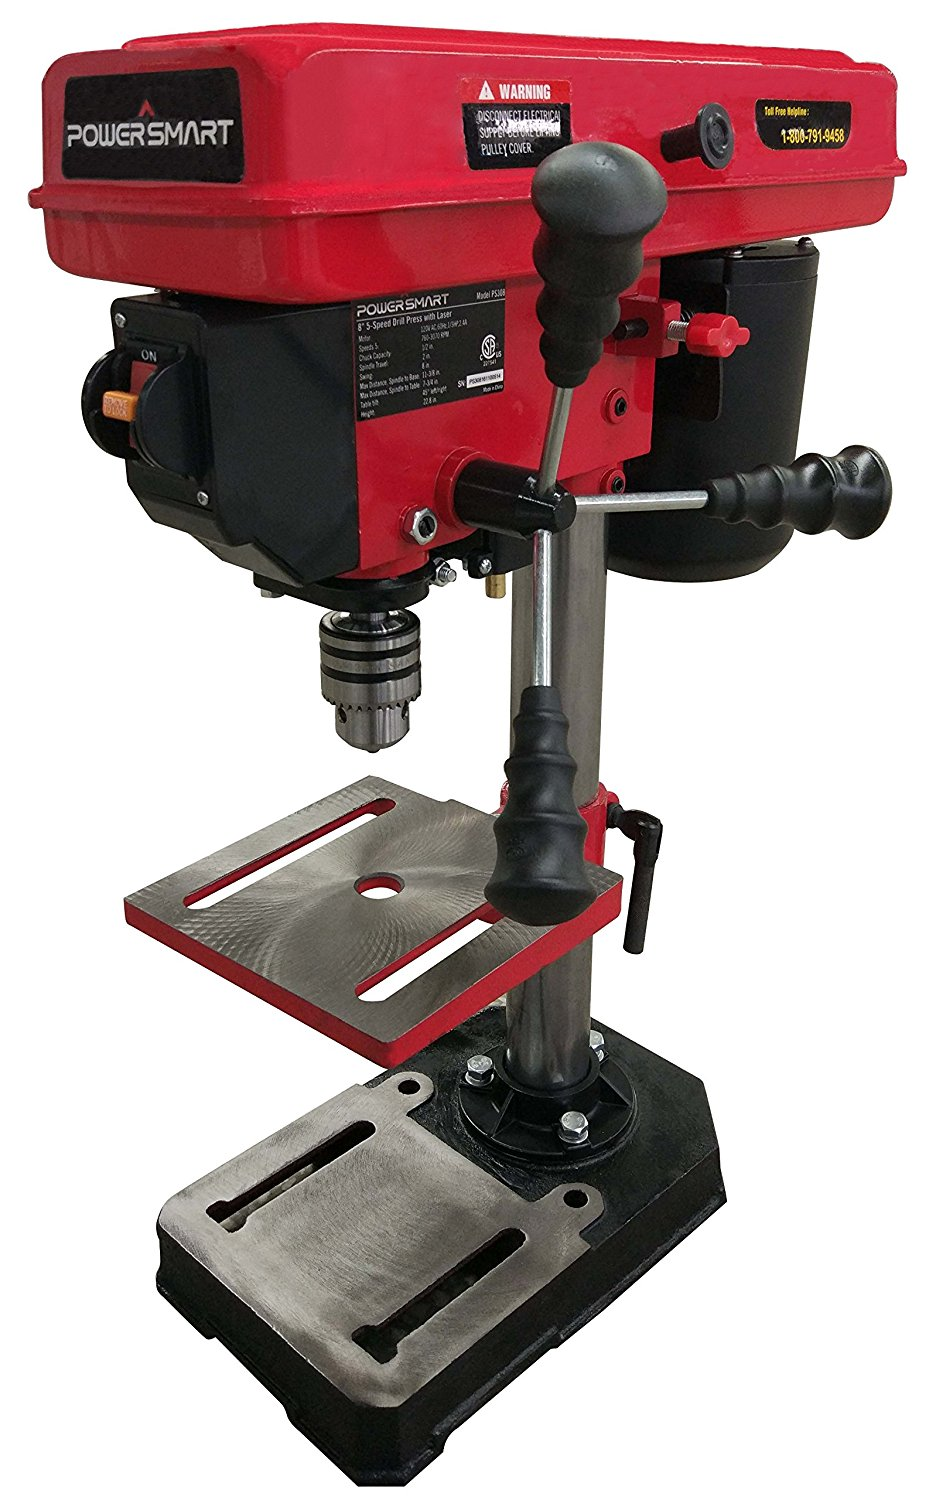 PowerSmart PS308 drill press